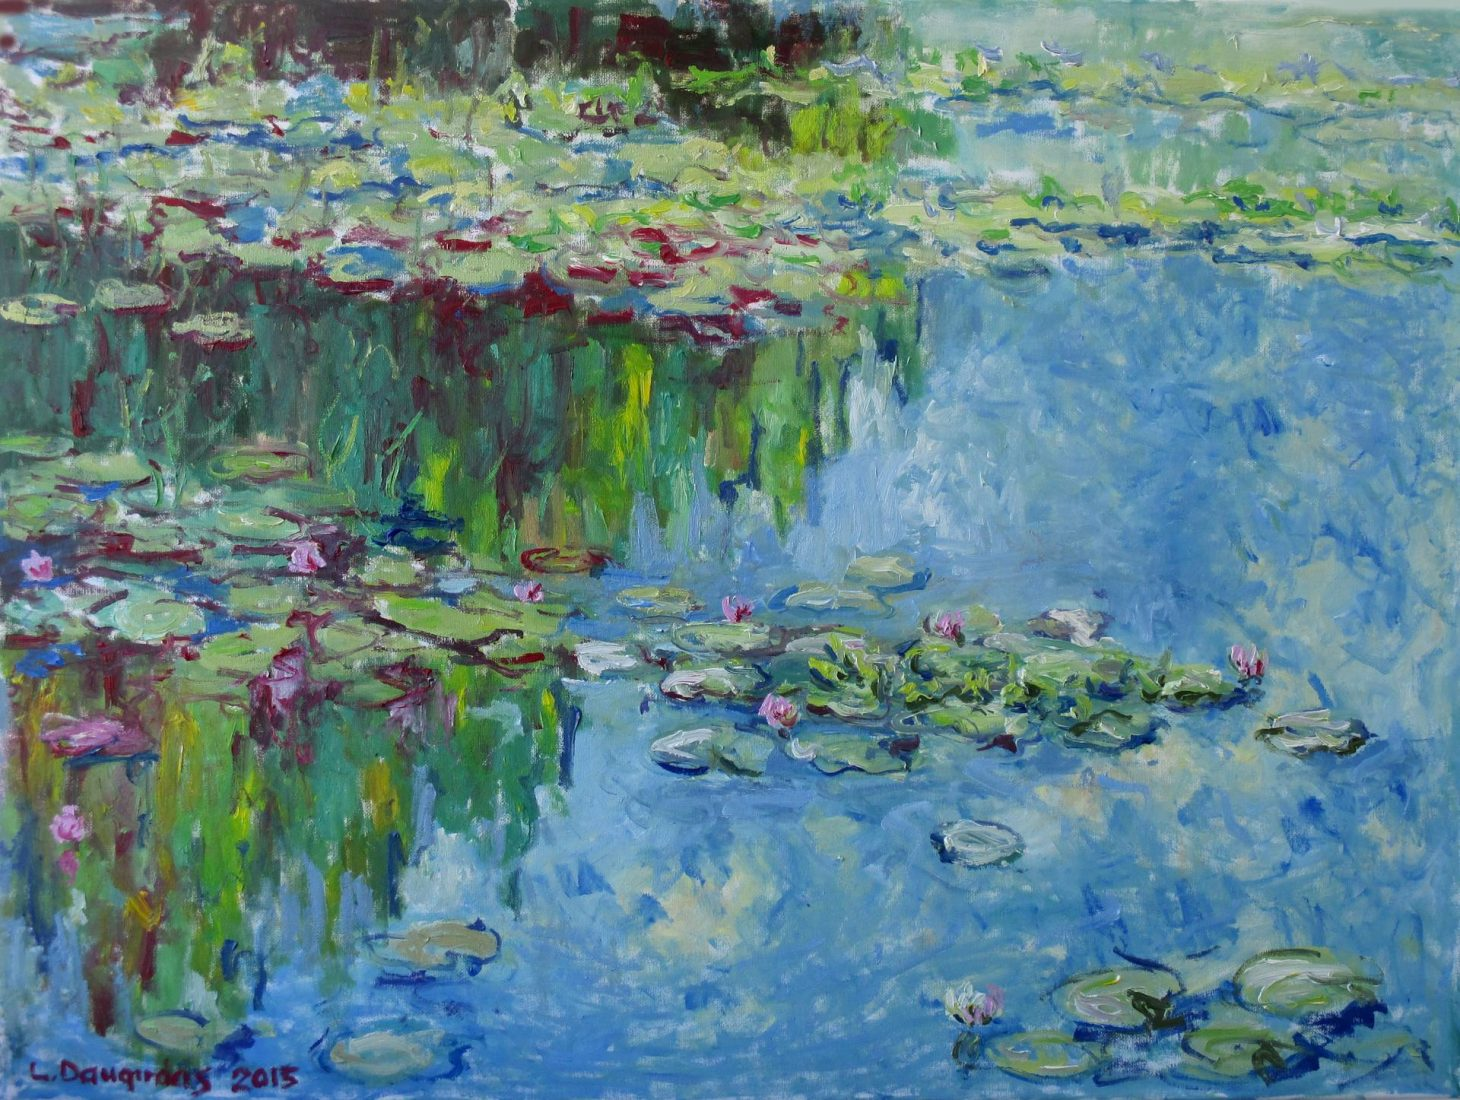 Water Lilies Painting by Liudvikas Daugirdas